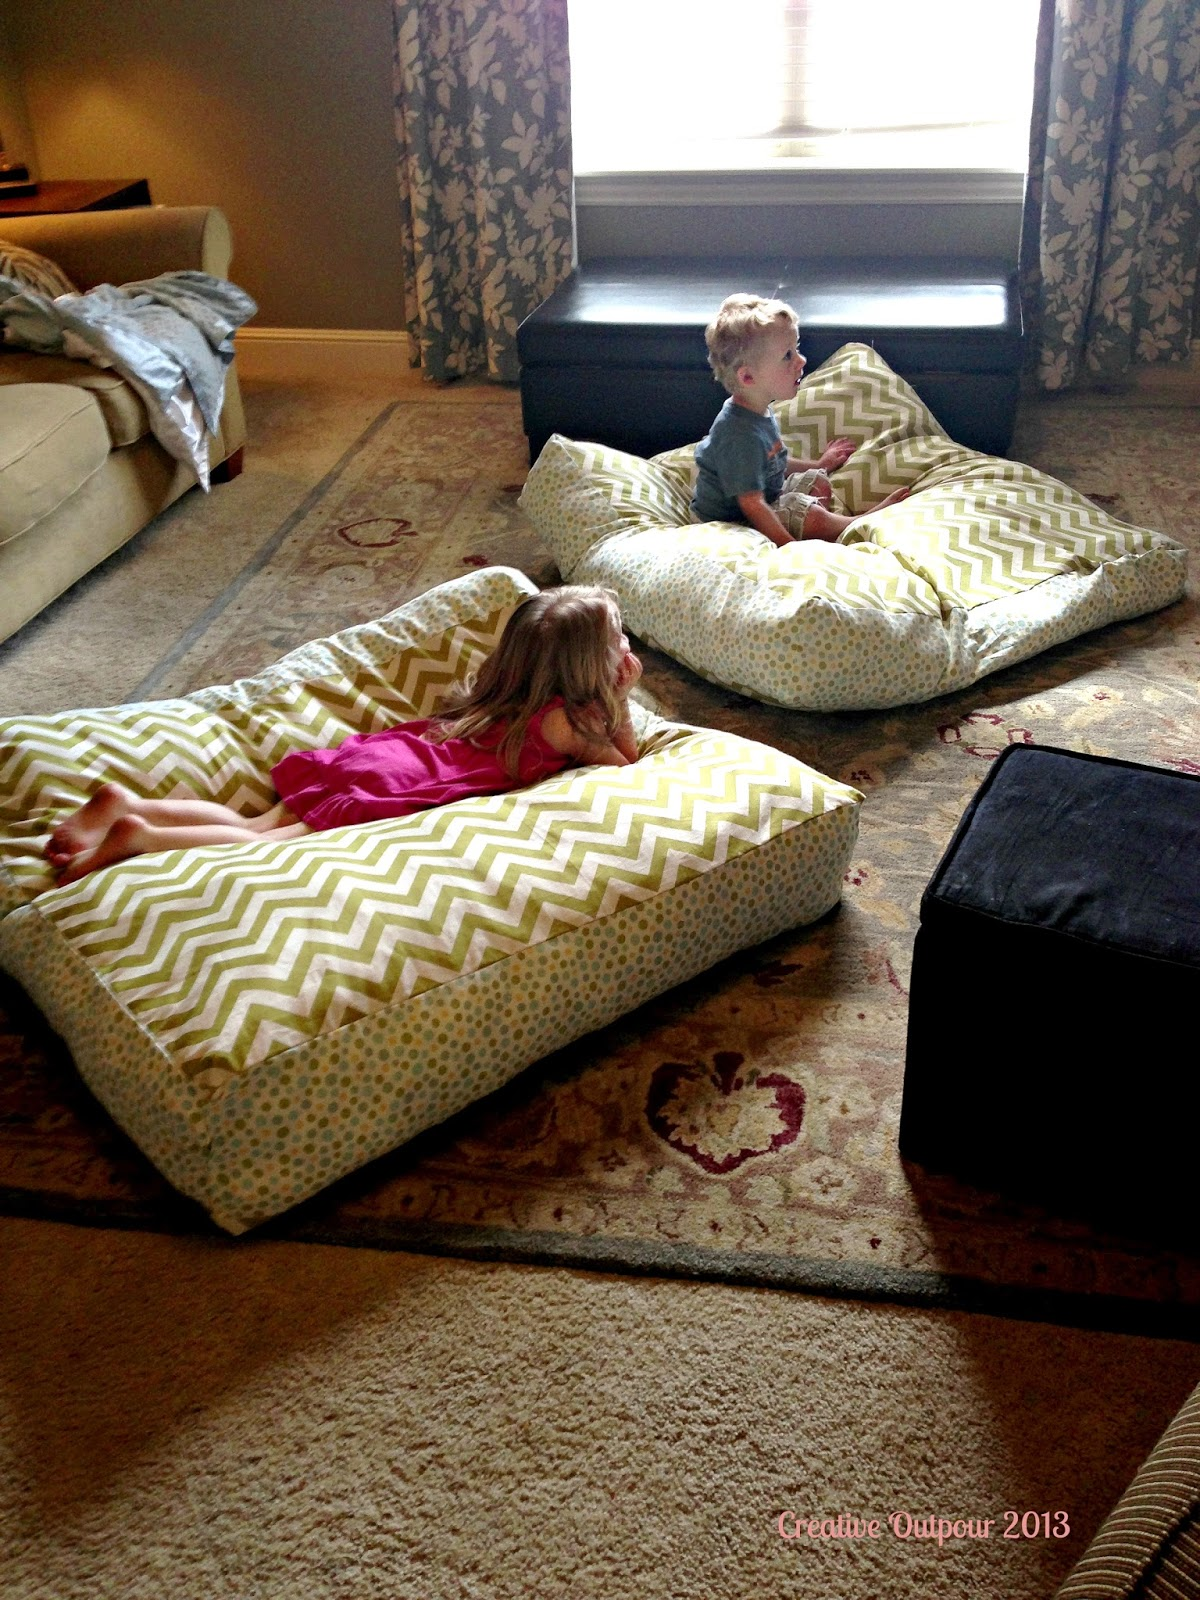 How To Make An Oversized Floor Pillow : Floor Pillows Completed! - Creative Outpour